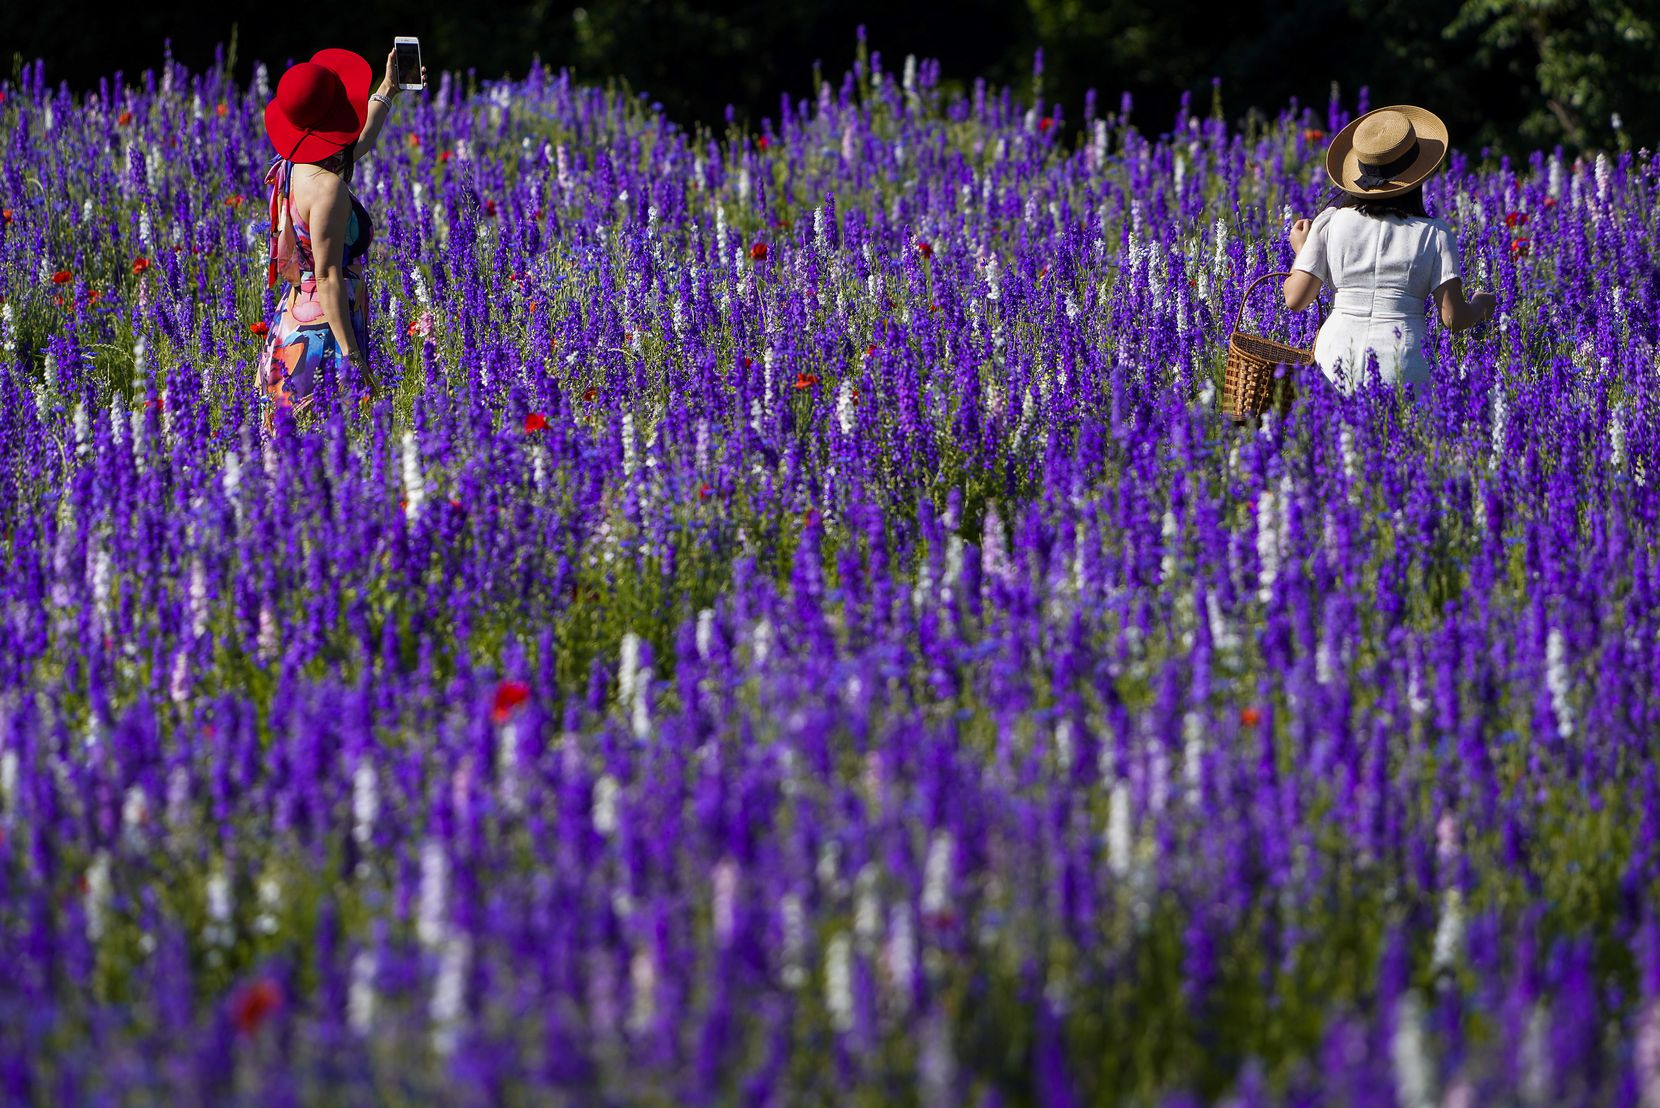 Thao Nguyen (left) and her daughter Phuong Vu walked through a field of wildflowers at Prairie Creek Park in Richardson on May 6, 2020.